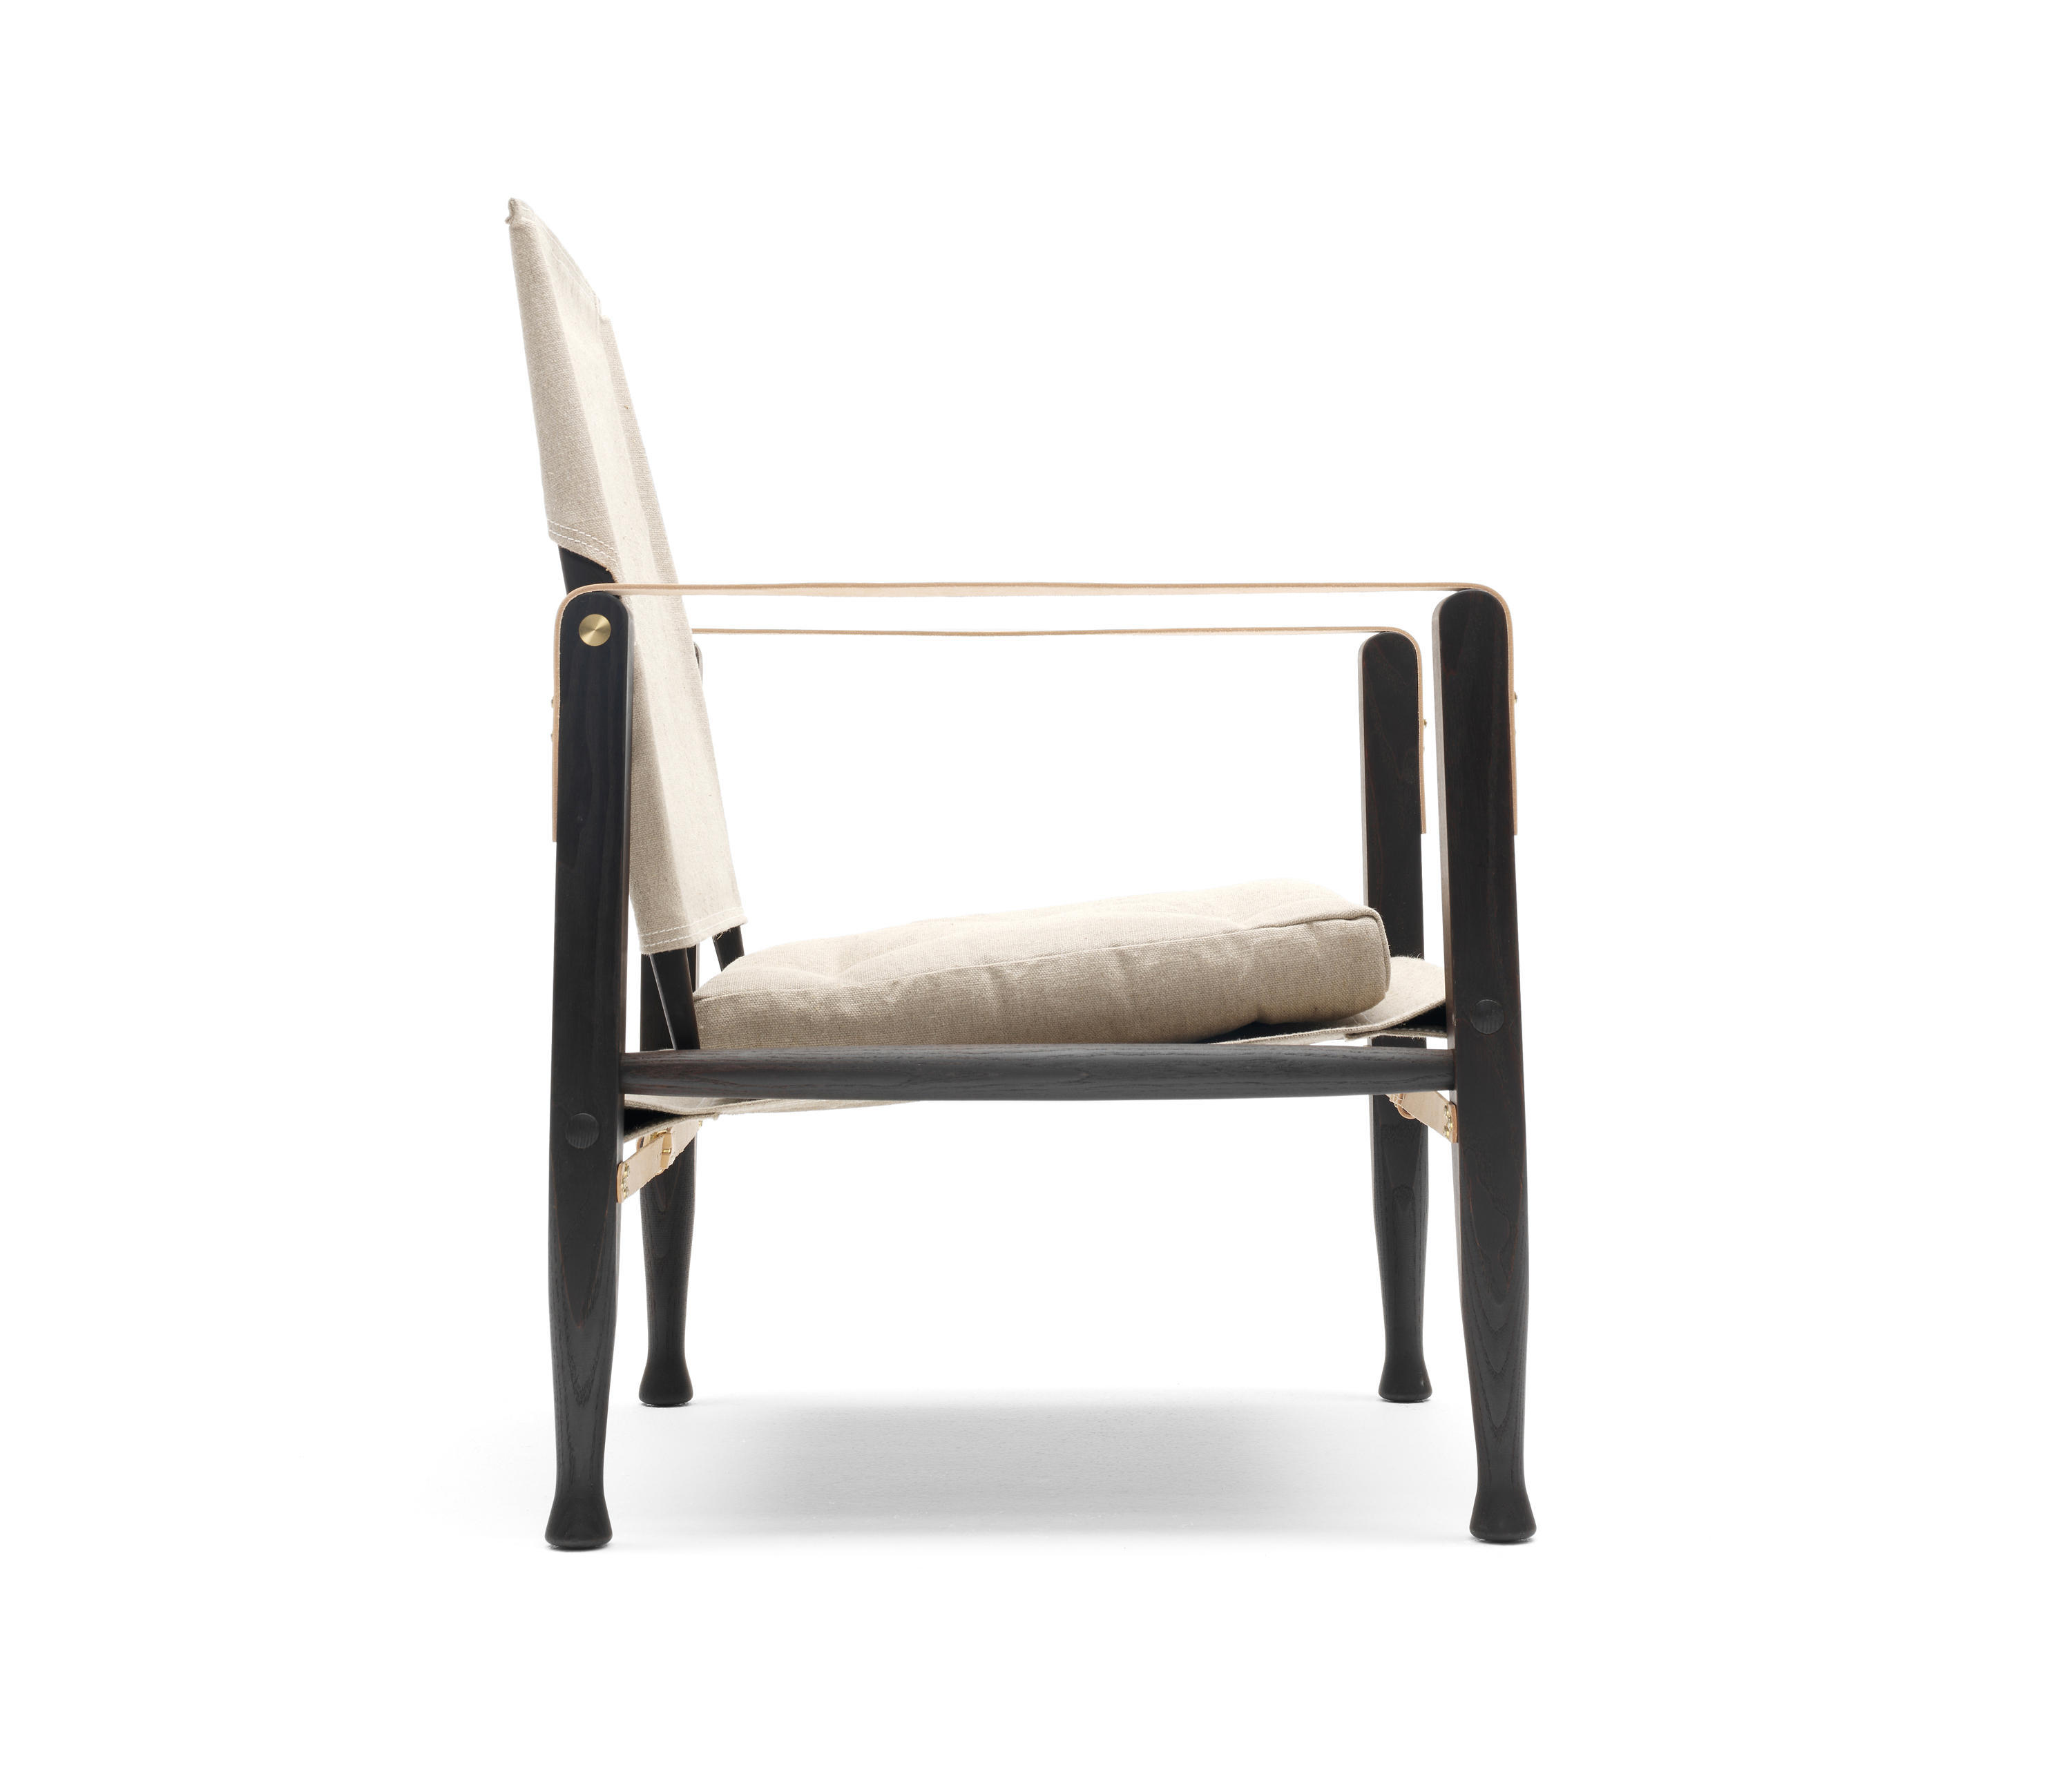 KK4700 SAFARI CHAIR Lounge chairs from Carl Hansen & S¸n